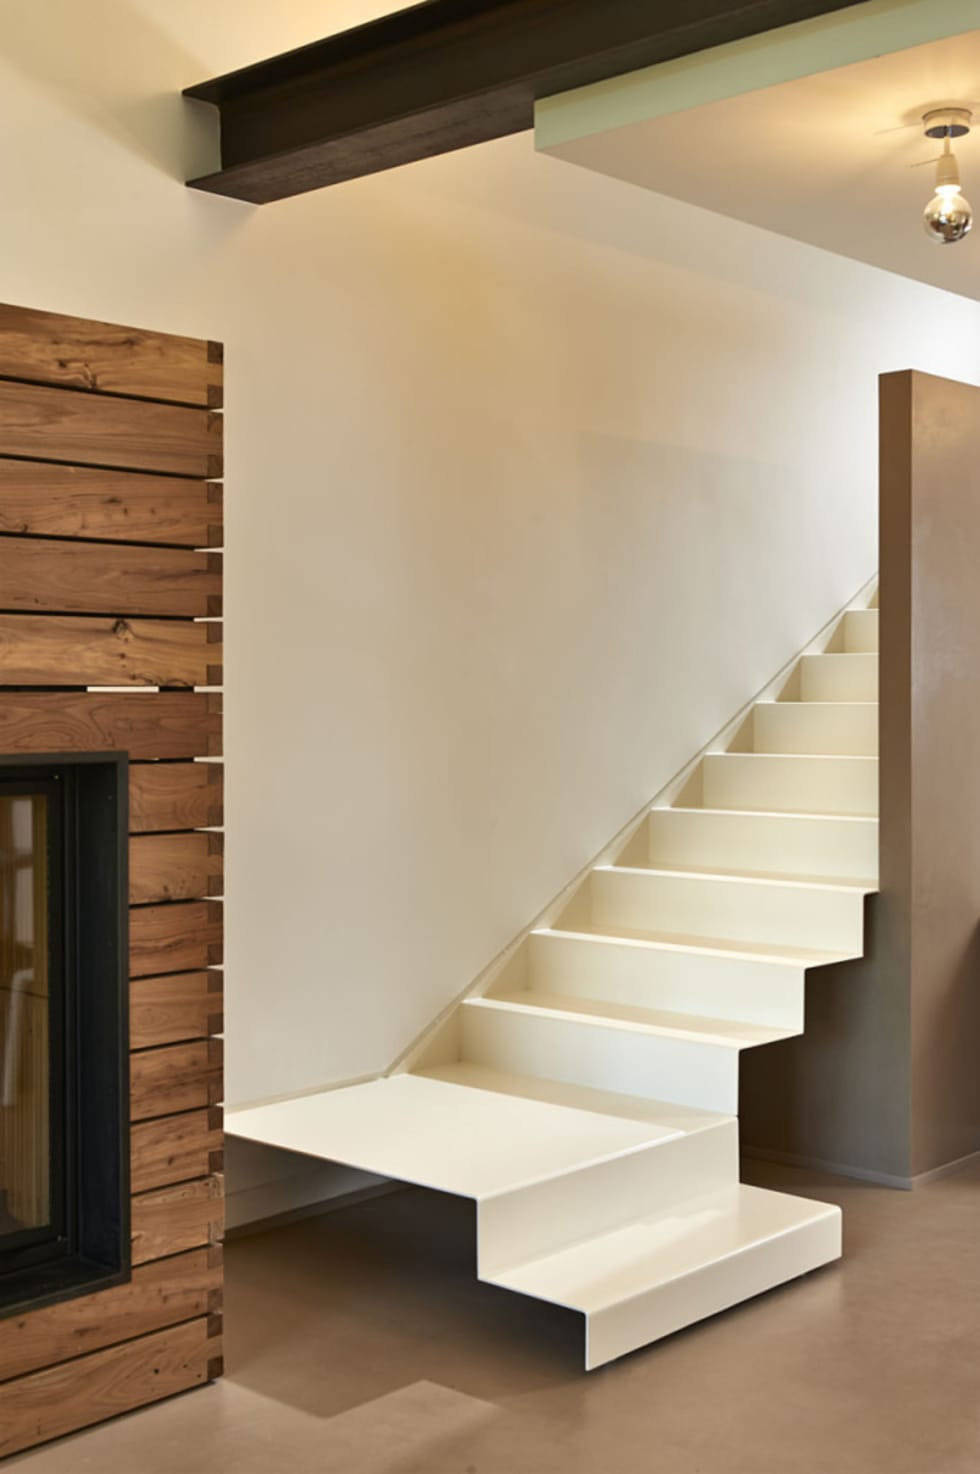 Interior design ideas inspiration pictures homify for Escaleras modernas para casa